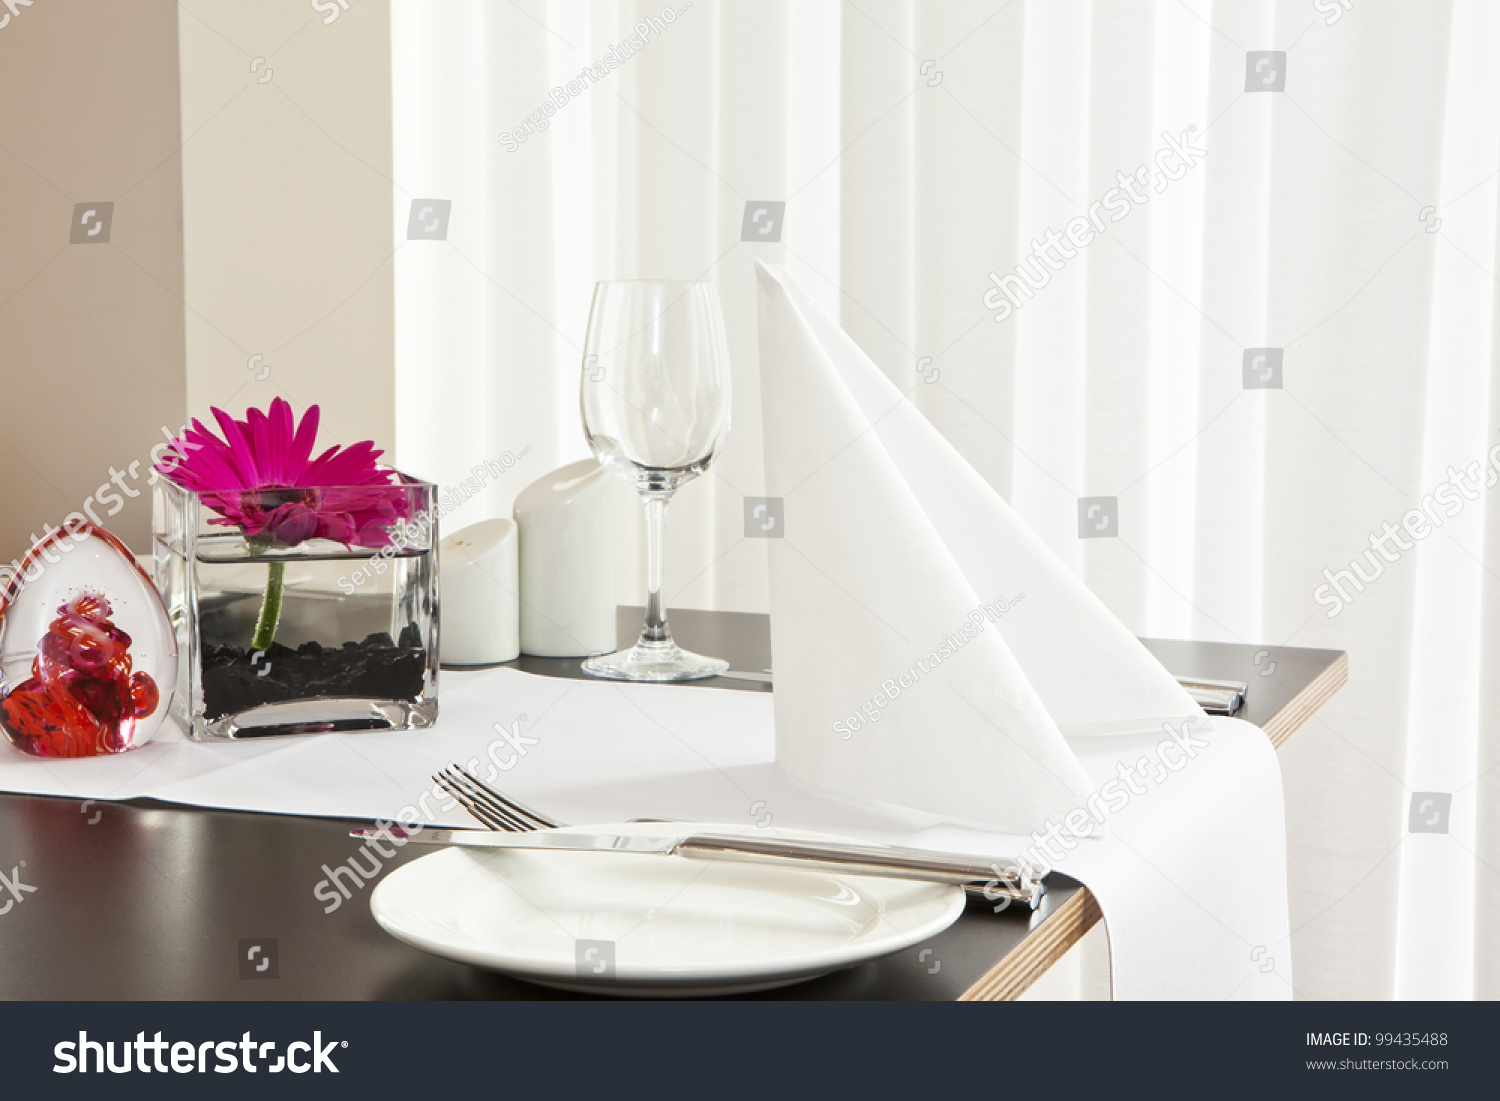 Formal Dining Table Set Flower Luxury Stock Photo 99435488